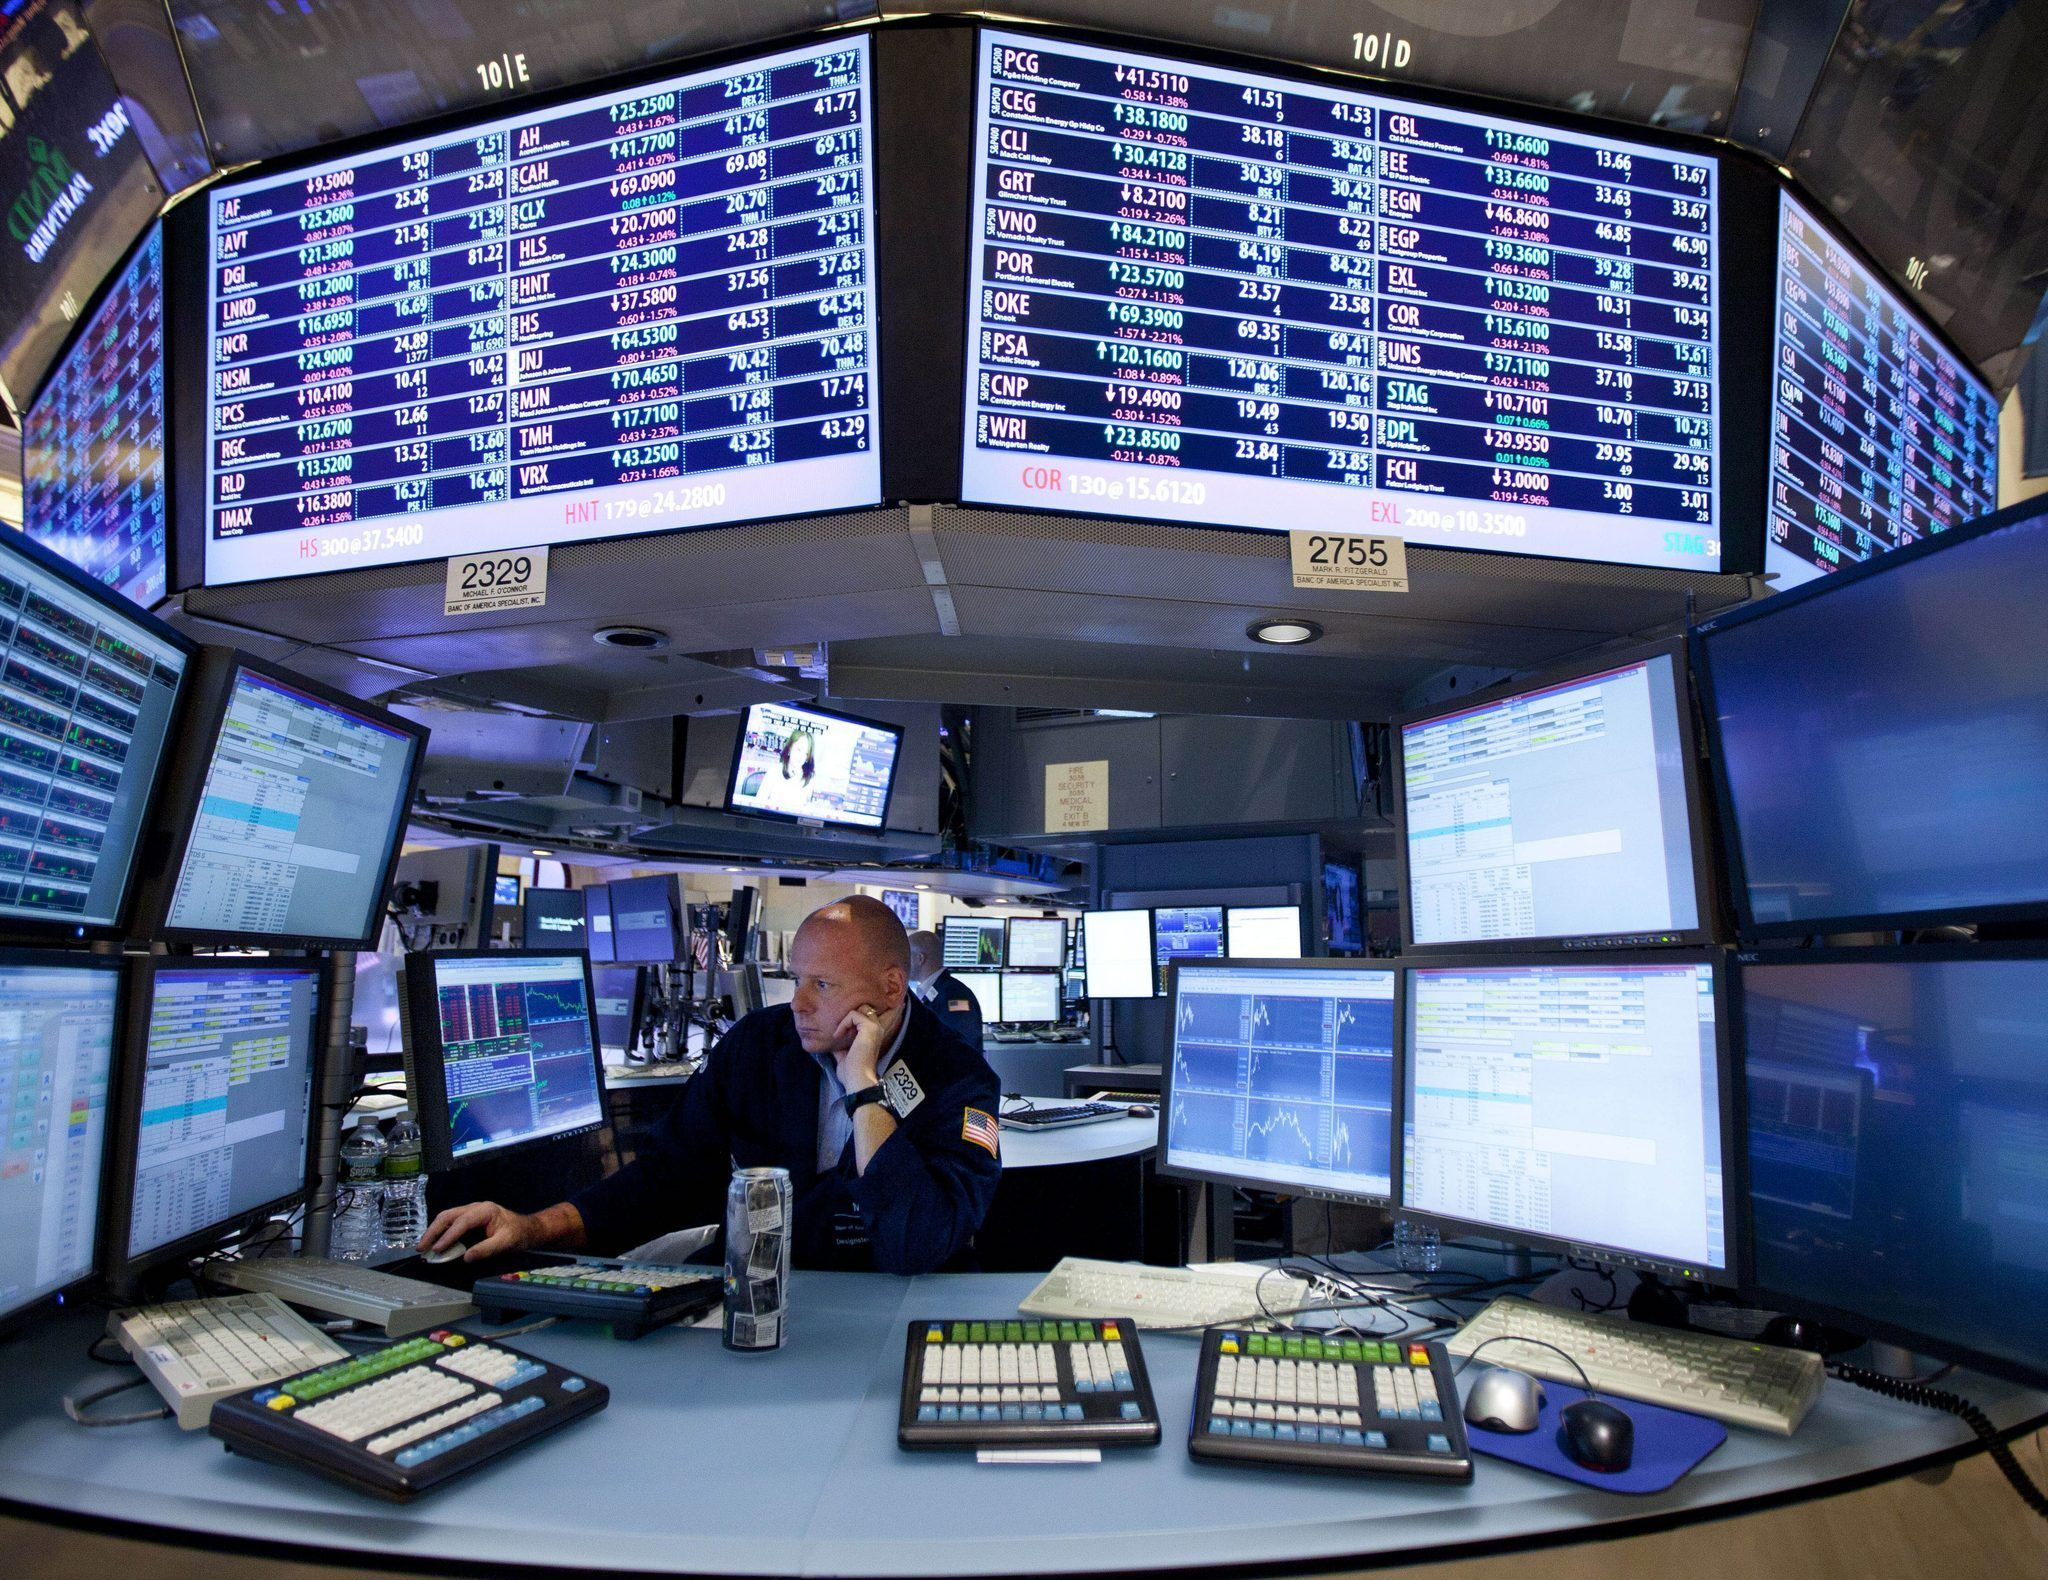 Nyse Floor Information Displays Offered Traders Simplified Graphics Allowing Individual Specialists To Configu Stock Market High Frequency Trading Wall Street